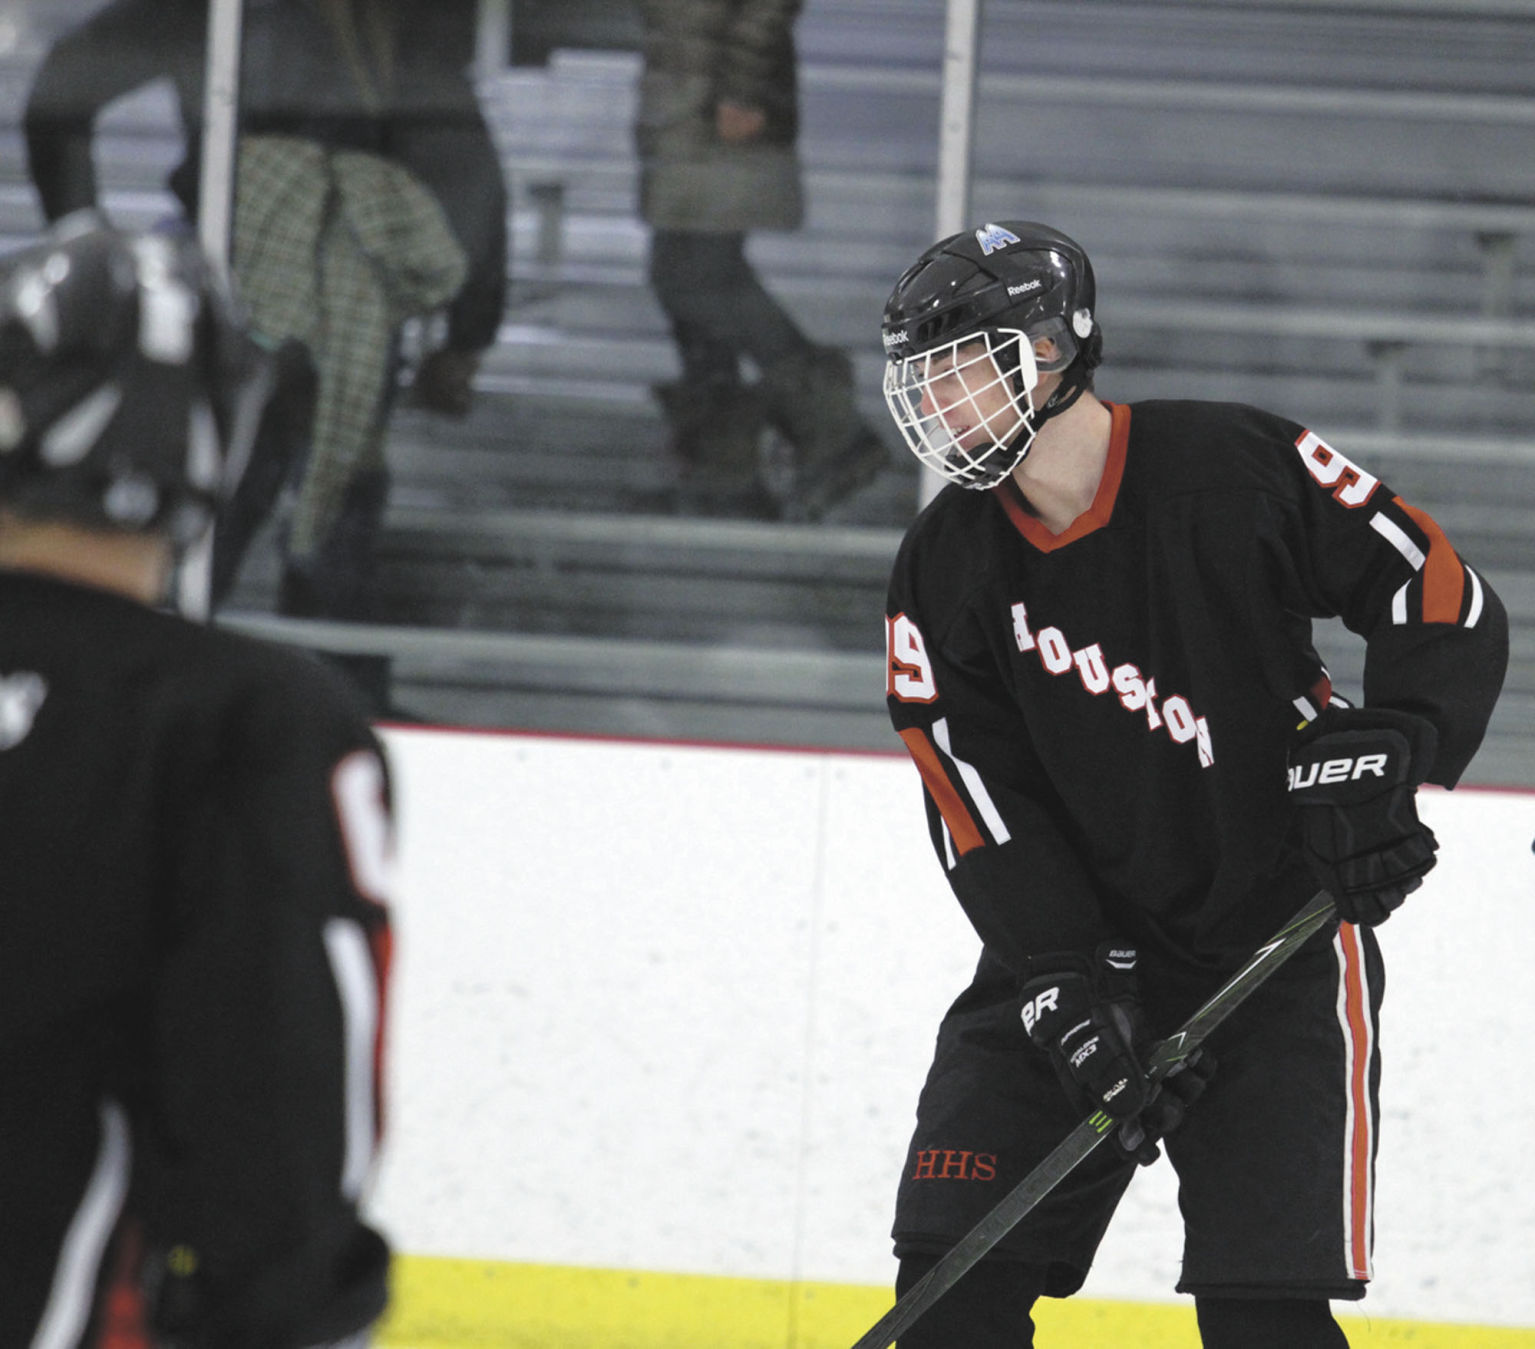 AK H.S.: For The Love Of The Game - Su Valley Athlete Commutes Up To 200 Miles Per Day To Play Hockey